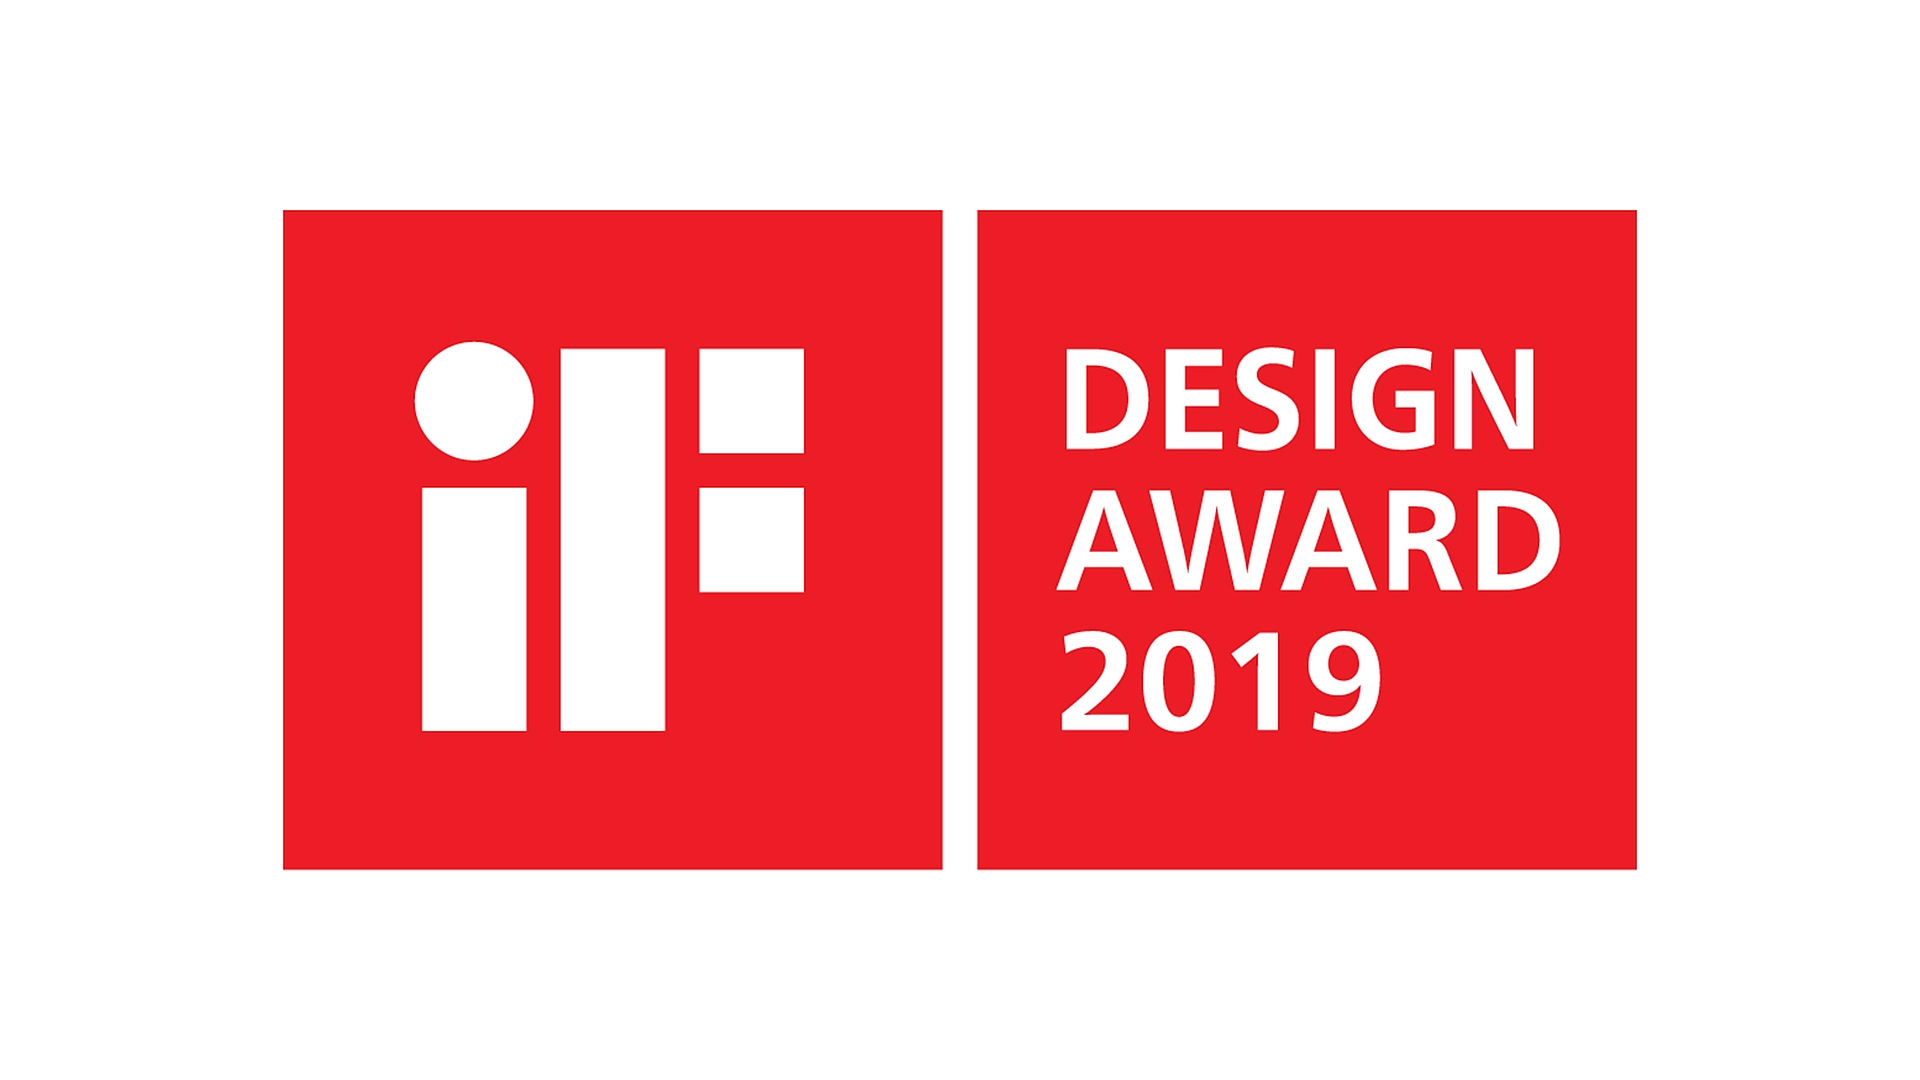 Award_if_design_award_2019_landscape.jpg